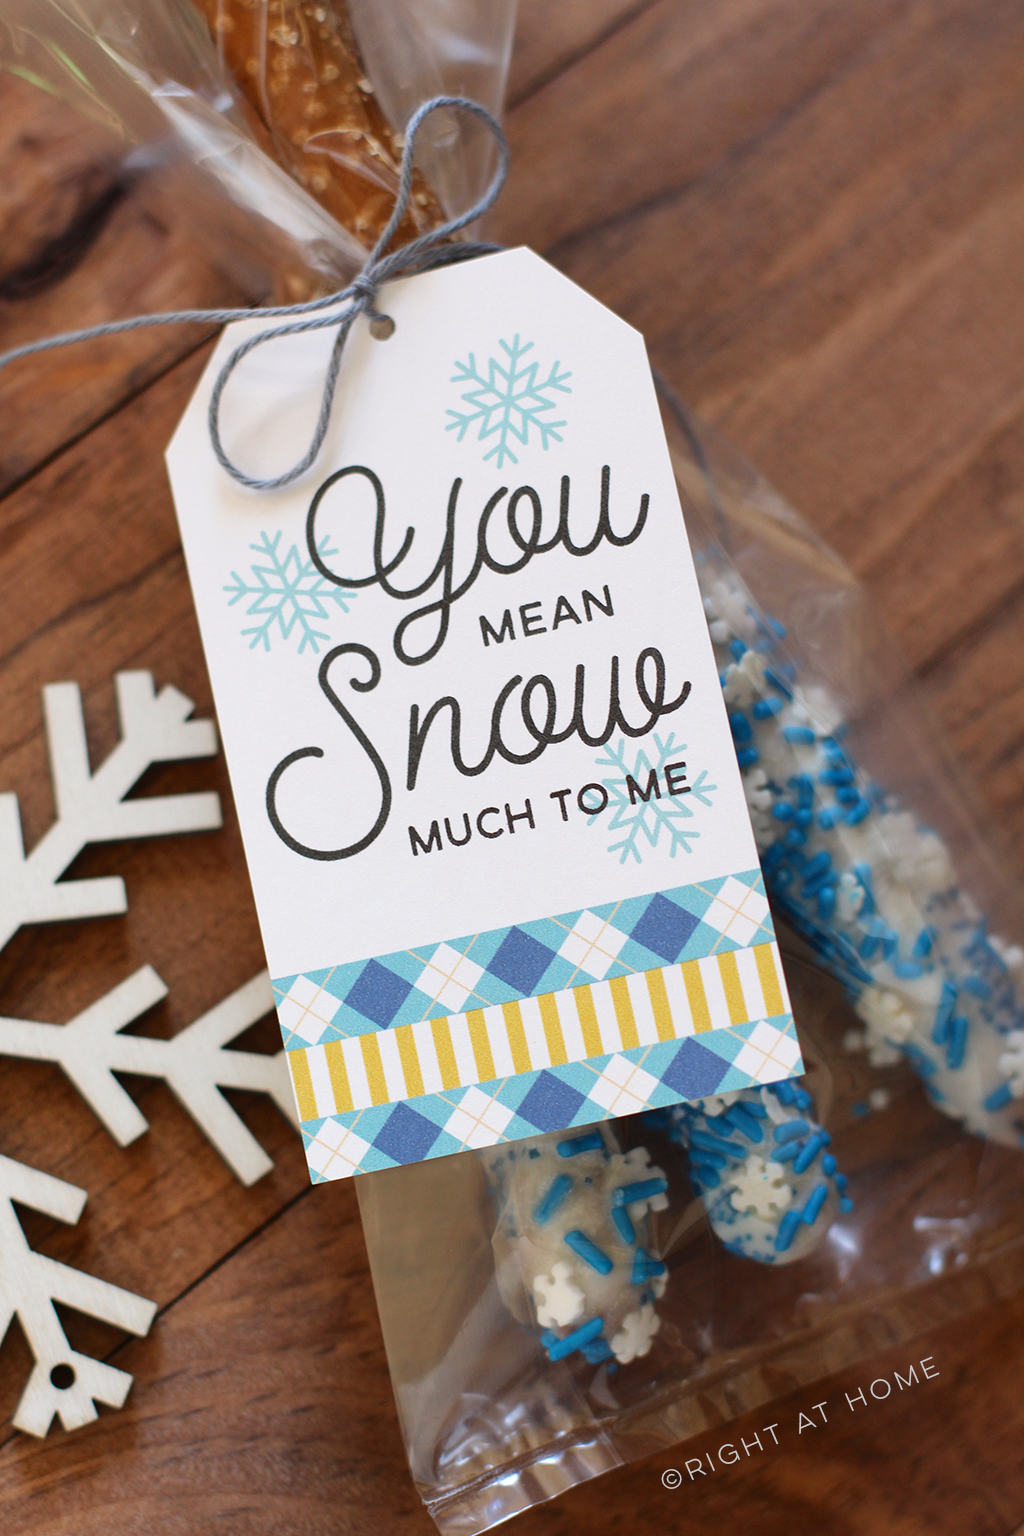 Printable Snowflake Tags + Dipped Pretzels - A yummy neighbor gift idea!